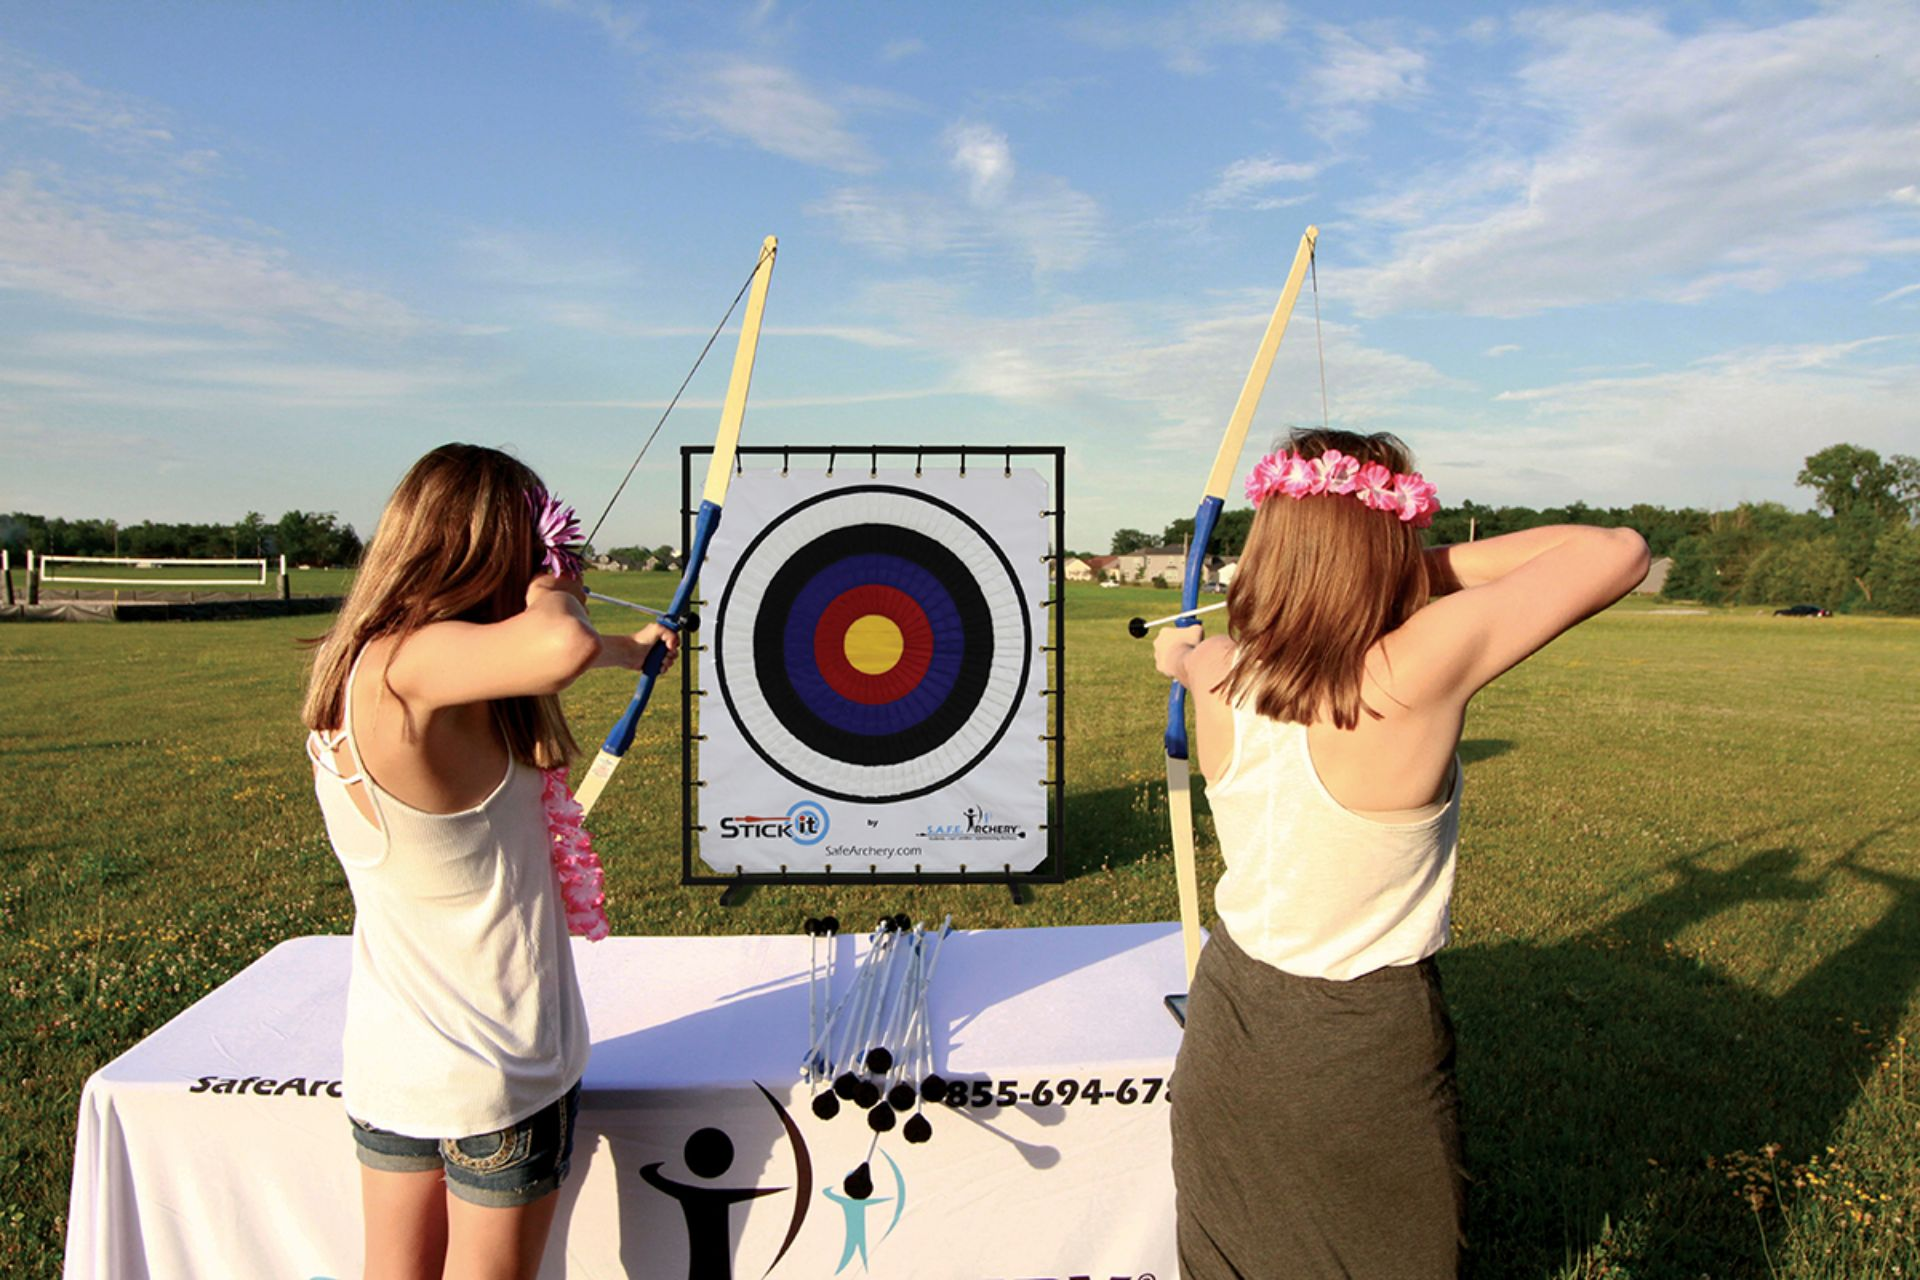 StickIt - Stick It - Xtreme Warrior Tag - Archery - Mobile Game Rentals - Gaming - Alabama (1)